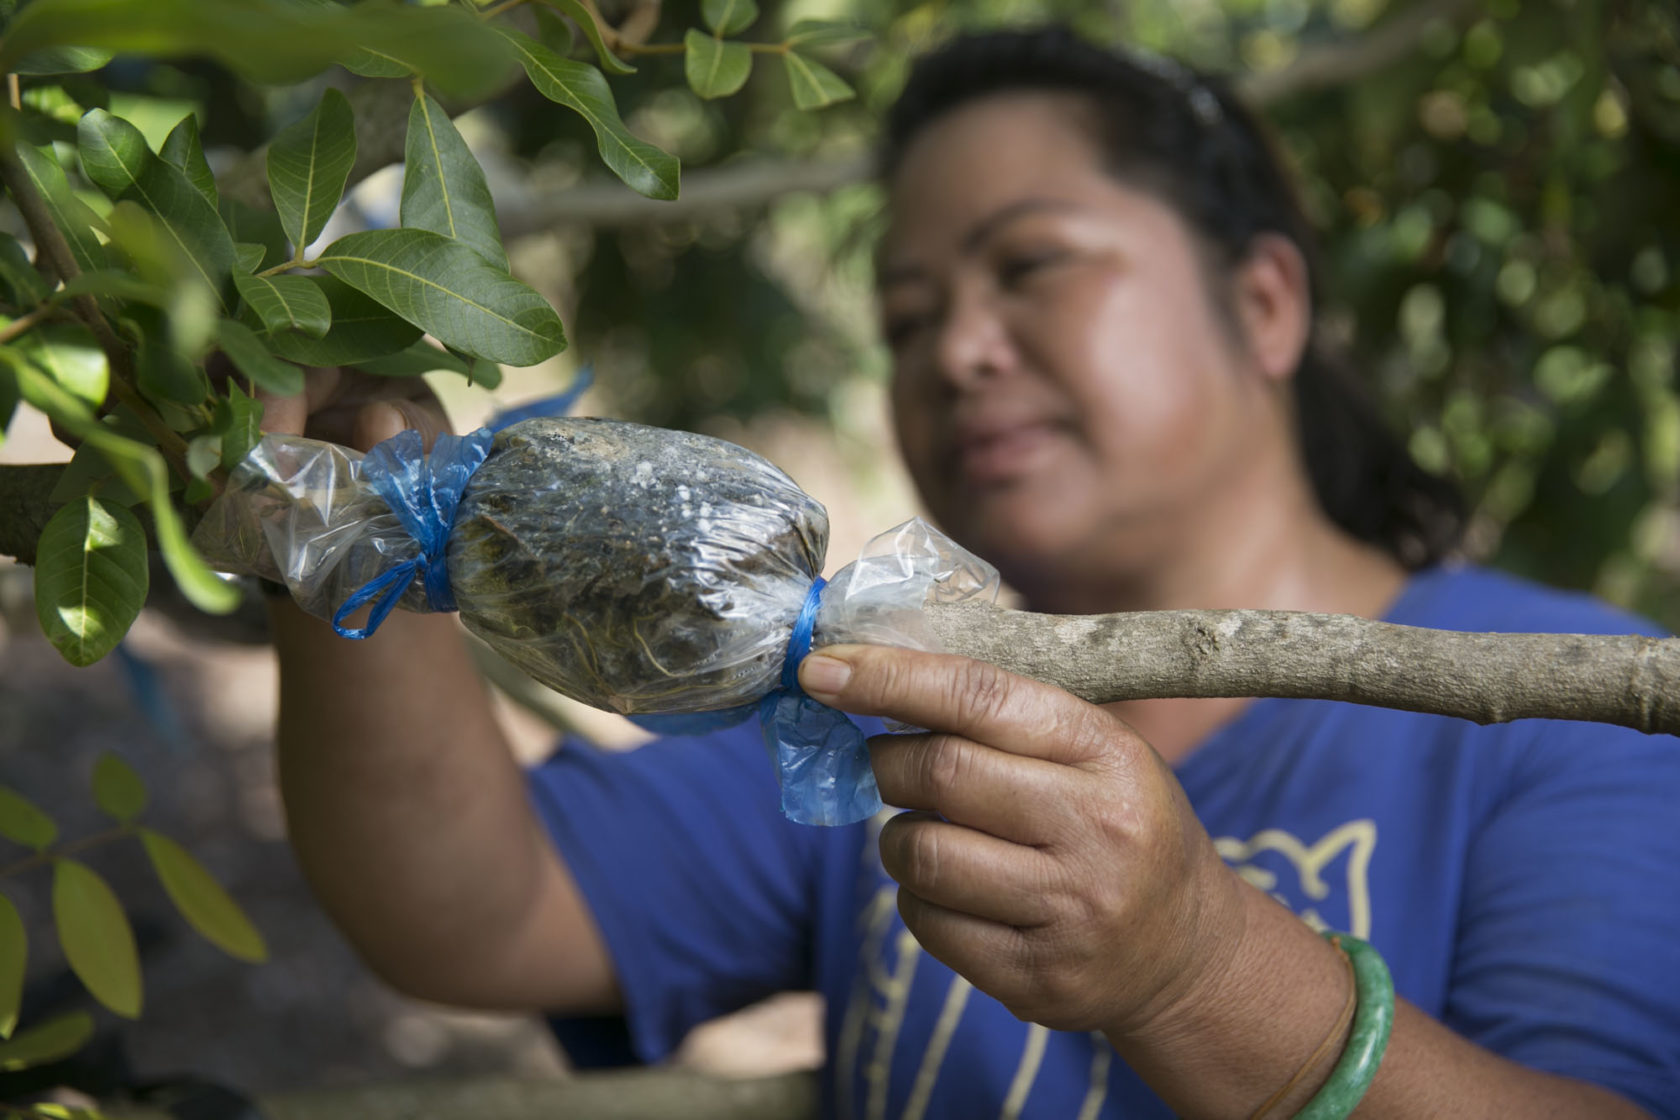 Chhorry Oung checks on her fruit tree grafting on land managed by Turtle Bay, Thursday, August 20, 2015 in Kahuku, Hawaii.  The Trust for Public Land is working with the North Shore Community Land Trust (NSCLT) to permanently dedicate the land to agricultural uses, removing the constant threat of it falling prey to development as part of the popular North Shore area.  (Photo by Marco Garcia for The Trust for Public Land)